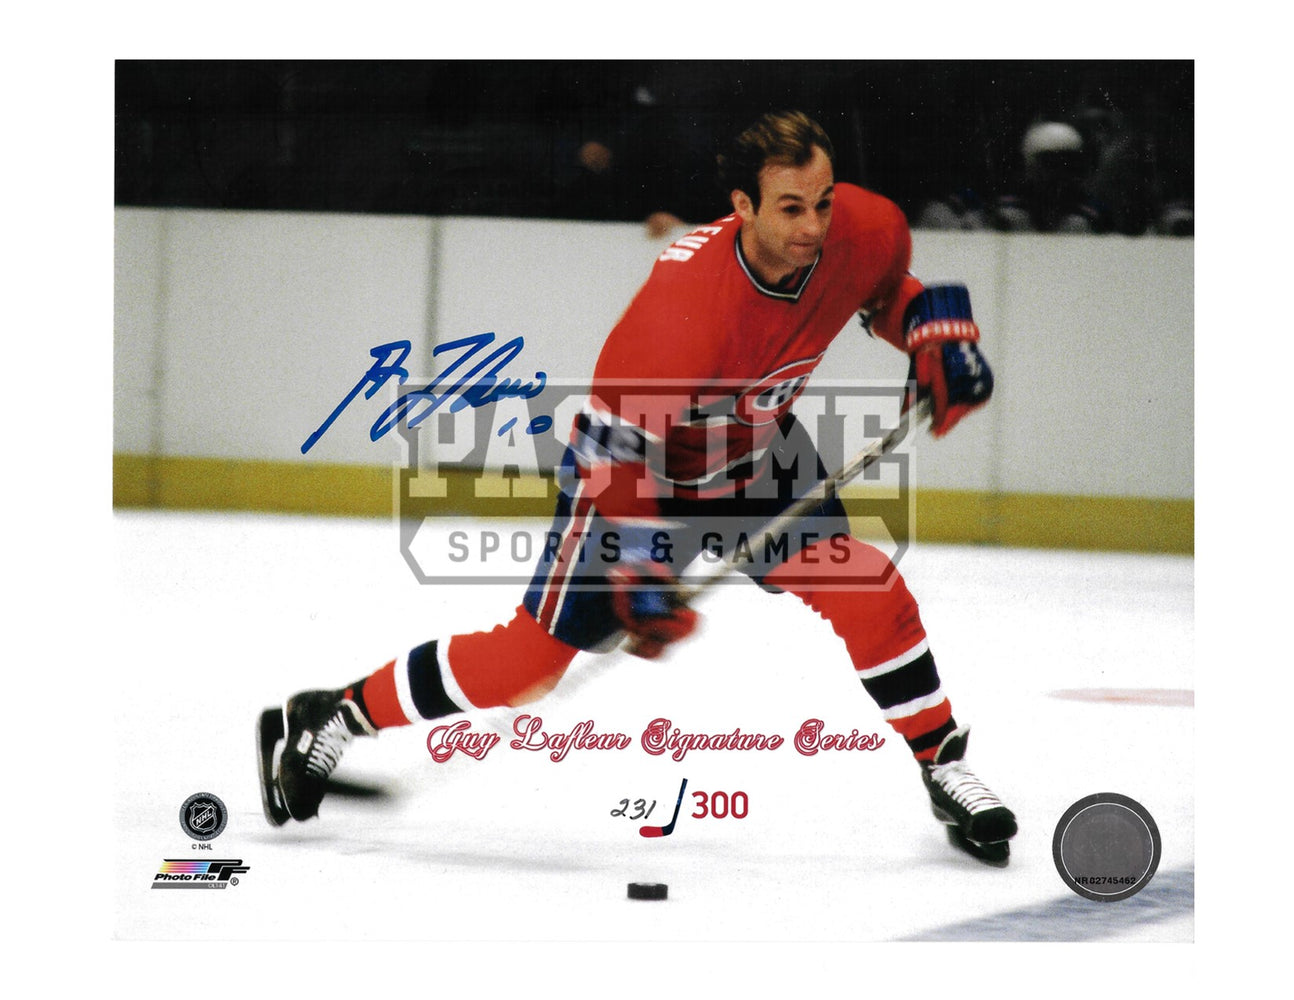 Guy Lafleur Autographed 8X10 Montreal Canadians Home Jersey (Signature Series # out of 300) - Pastime Sports & Games